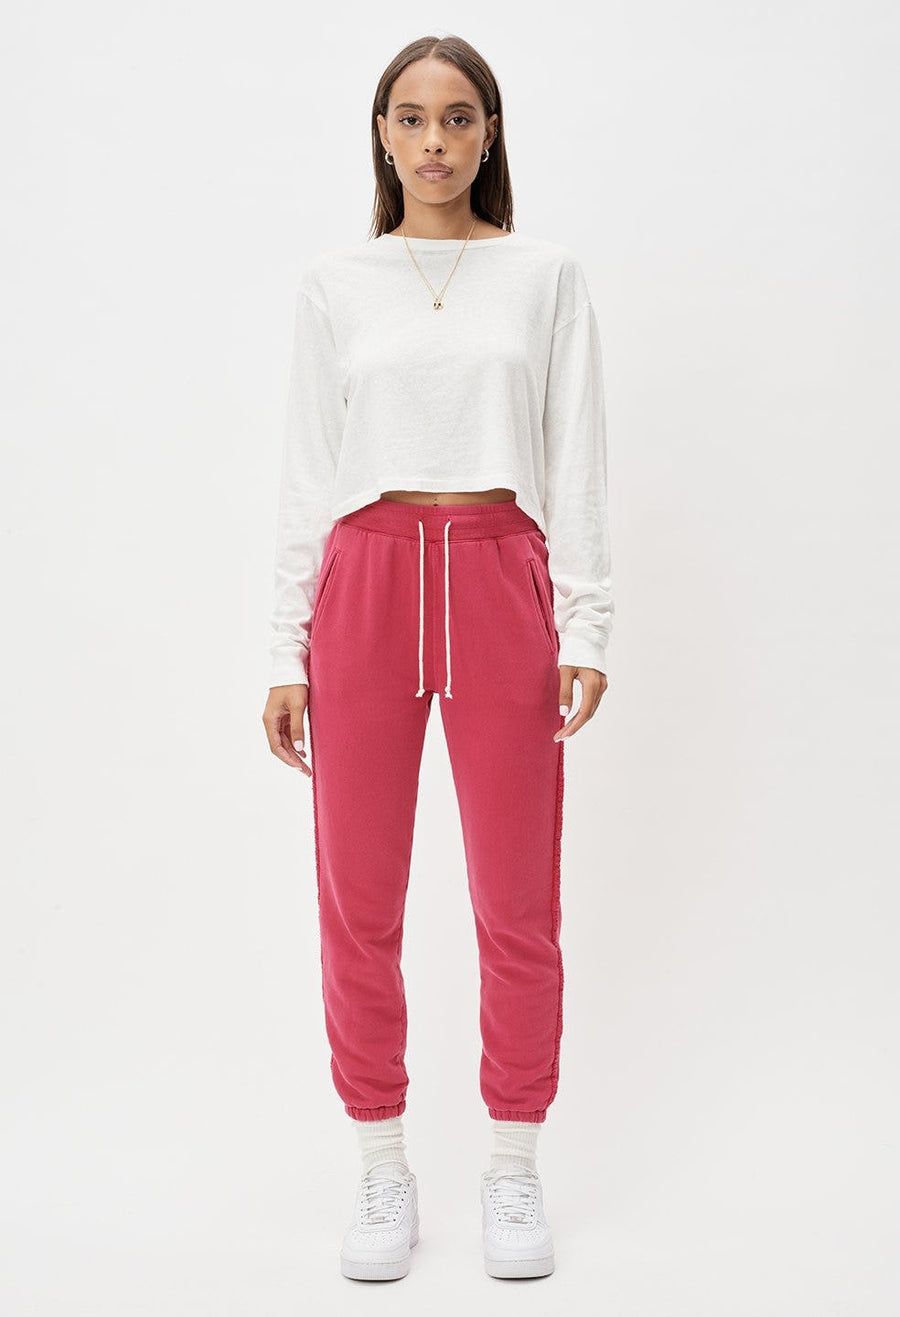 Embroidered Sweats